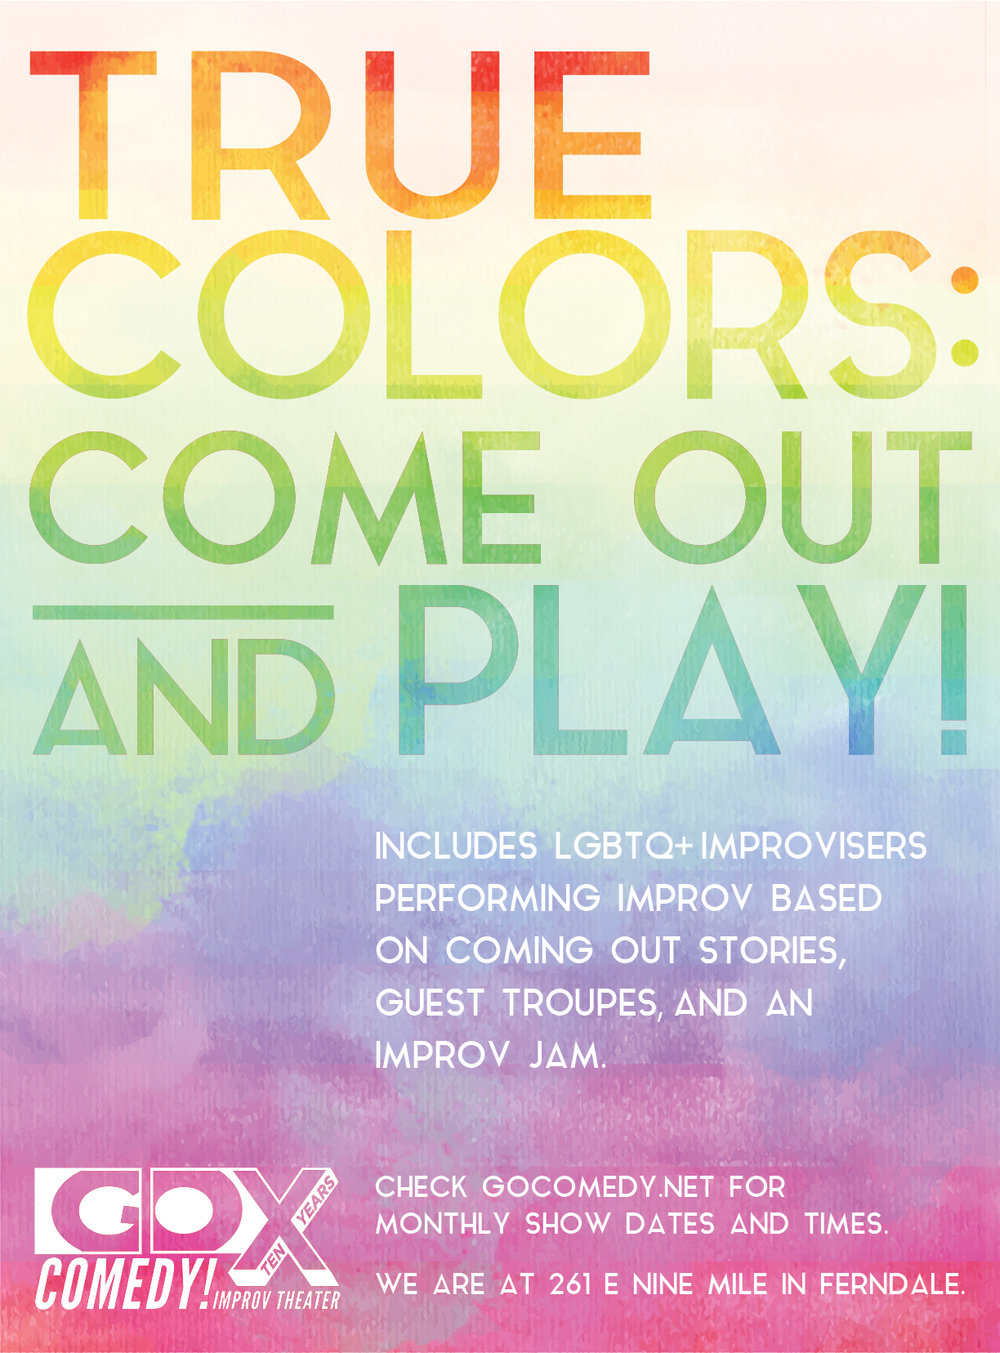 True Colors: Come Out and Play! ($10) — Go Comedy! Improv Theater